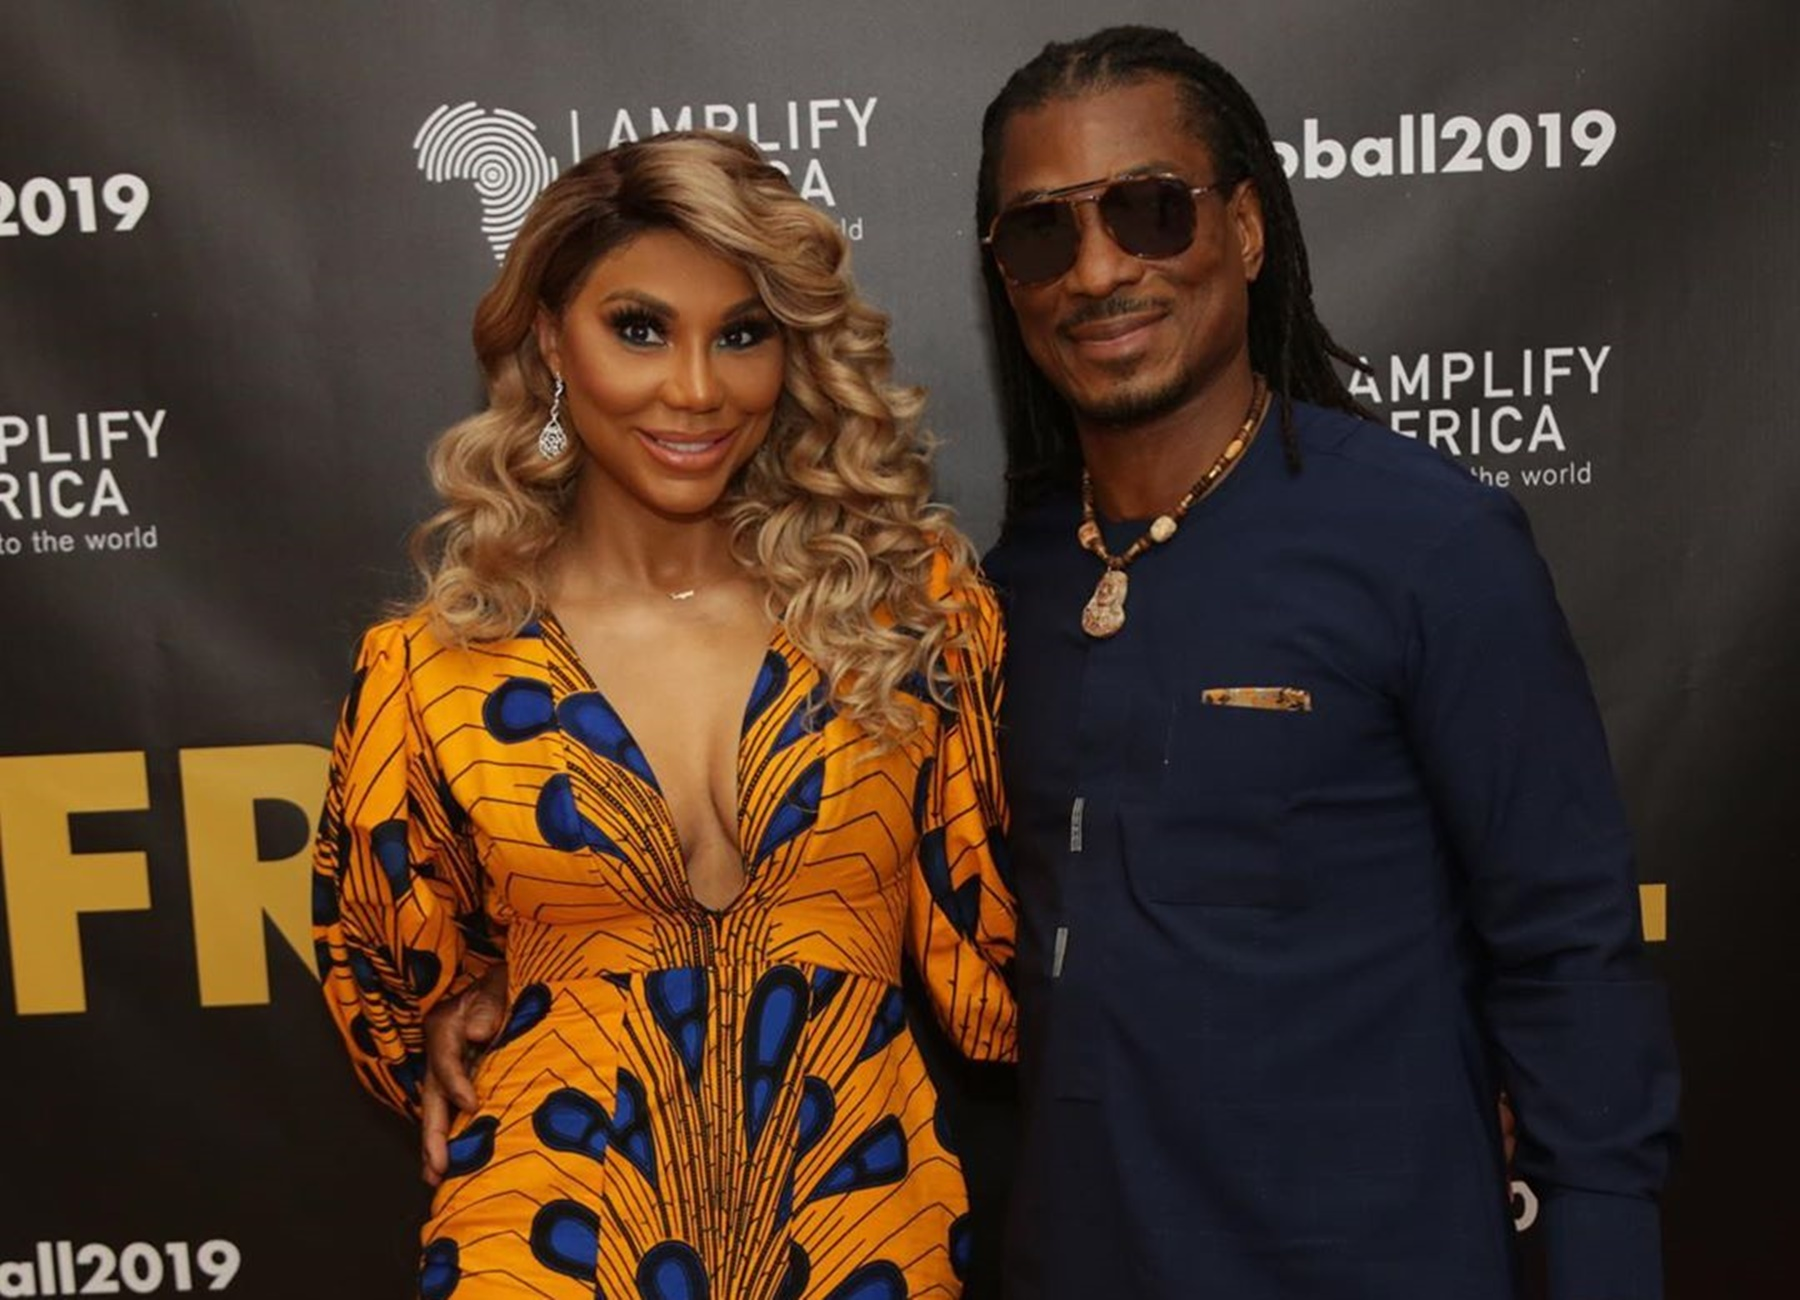 Tamar Braxton's BF, David Adefeso Tells People That Giving Up Is Never An Option